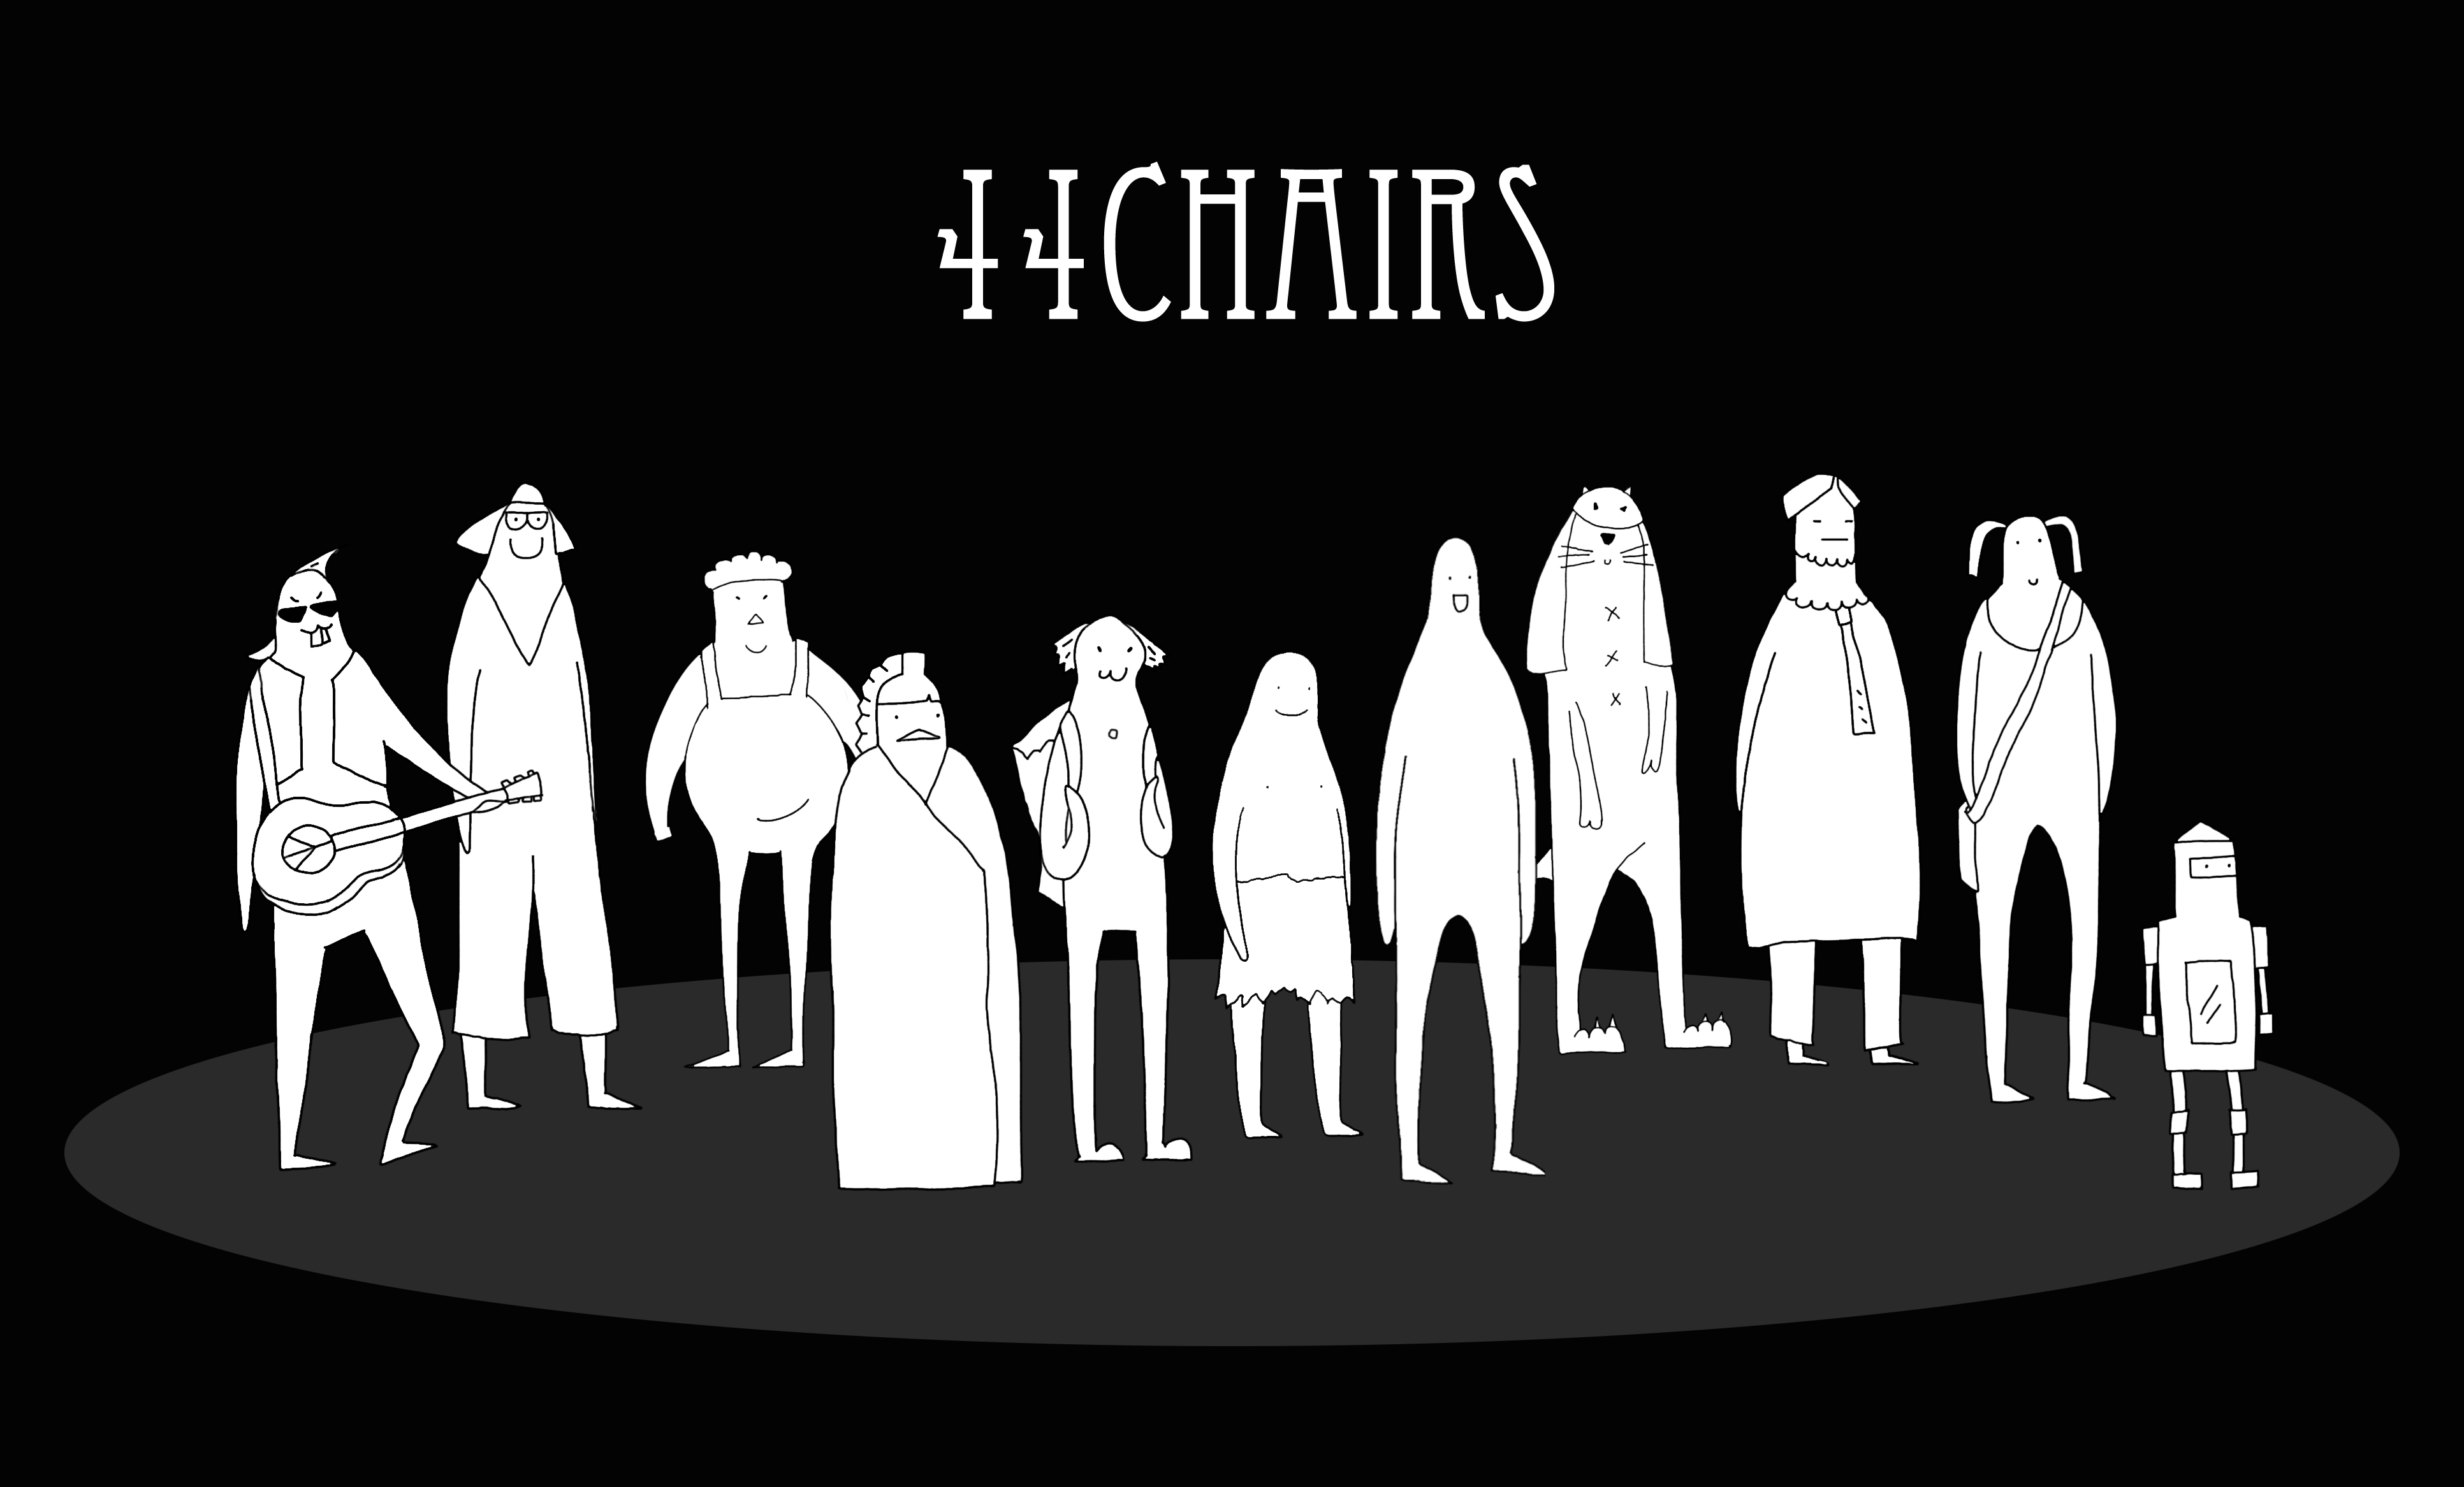 44 Chairs